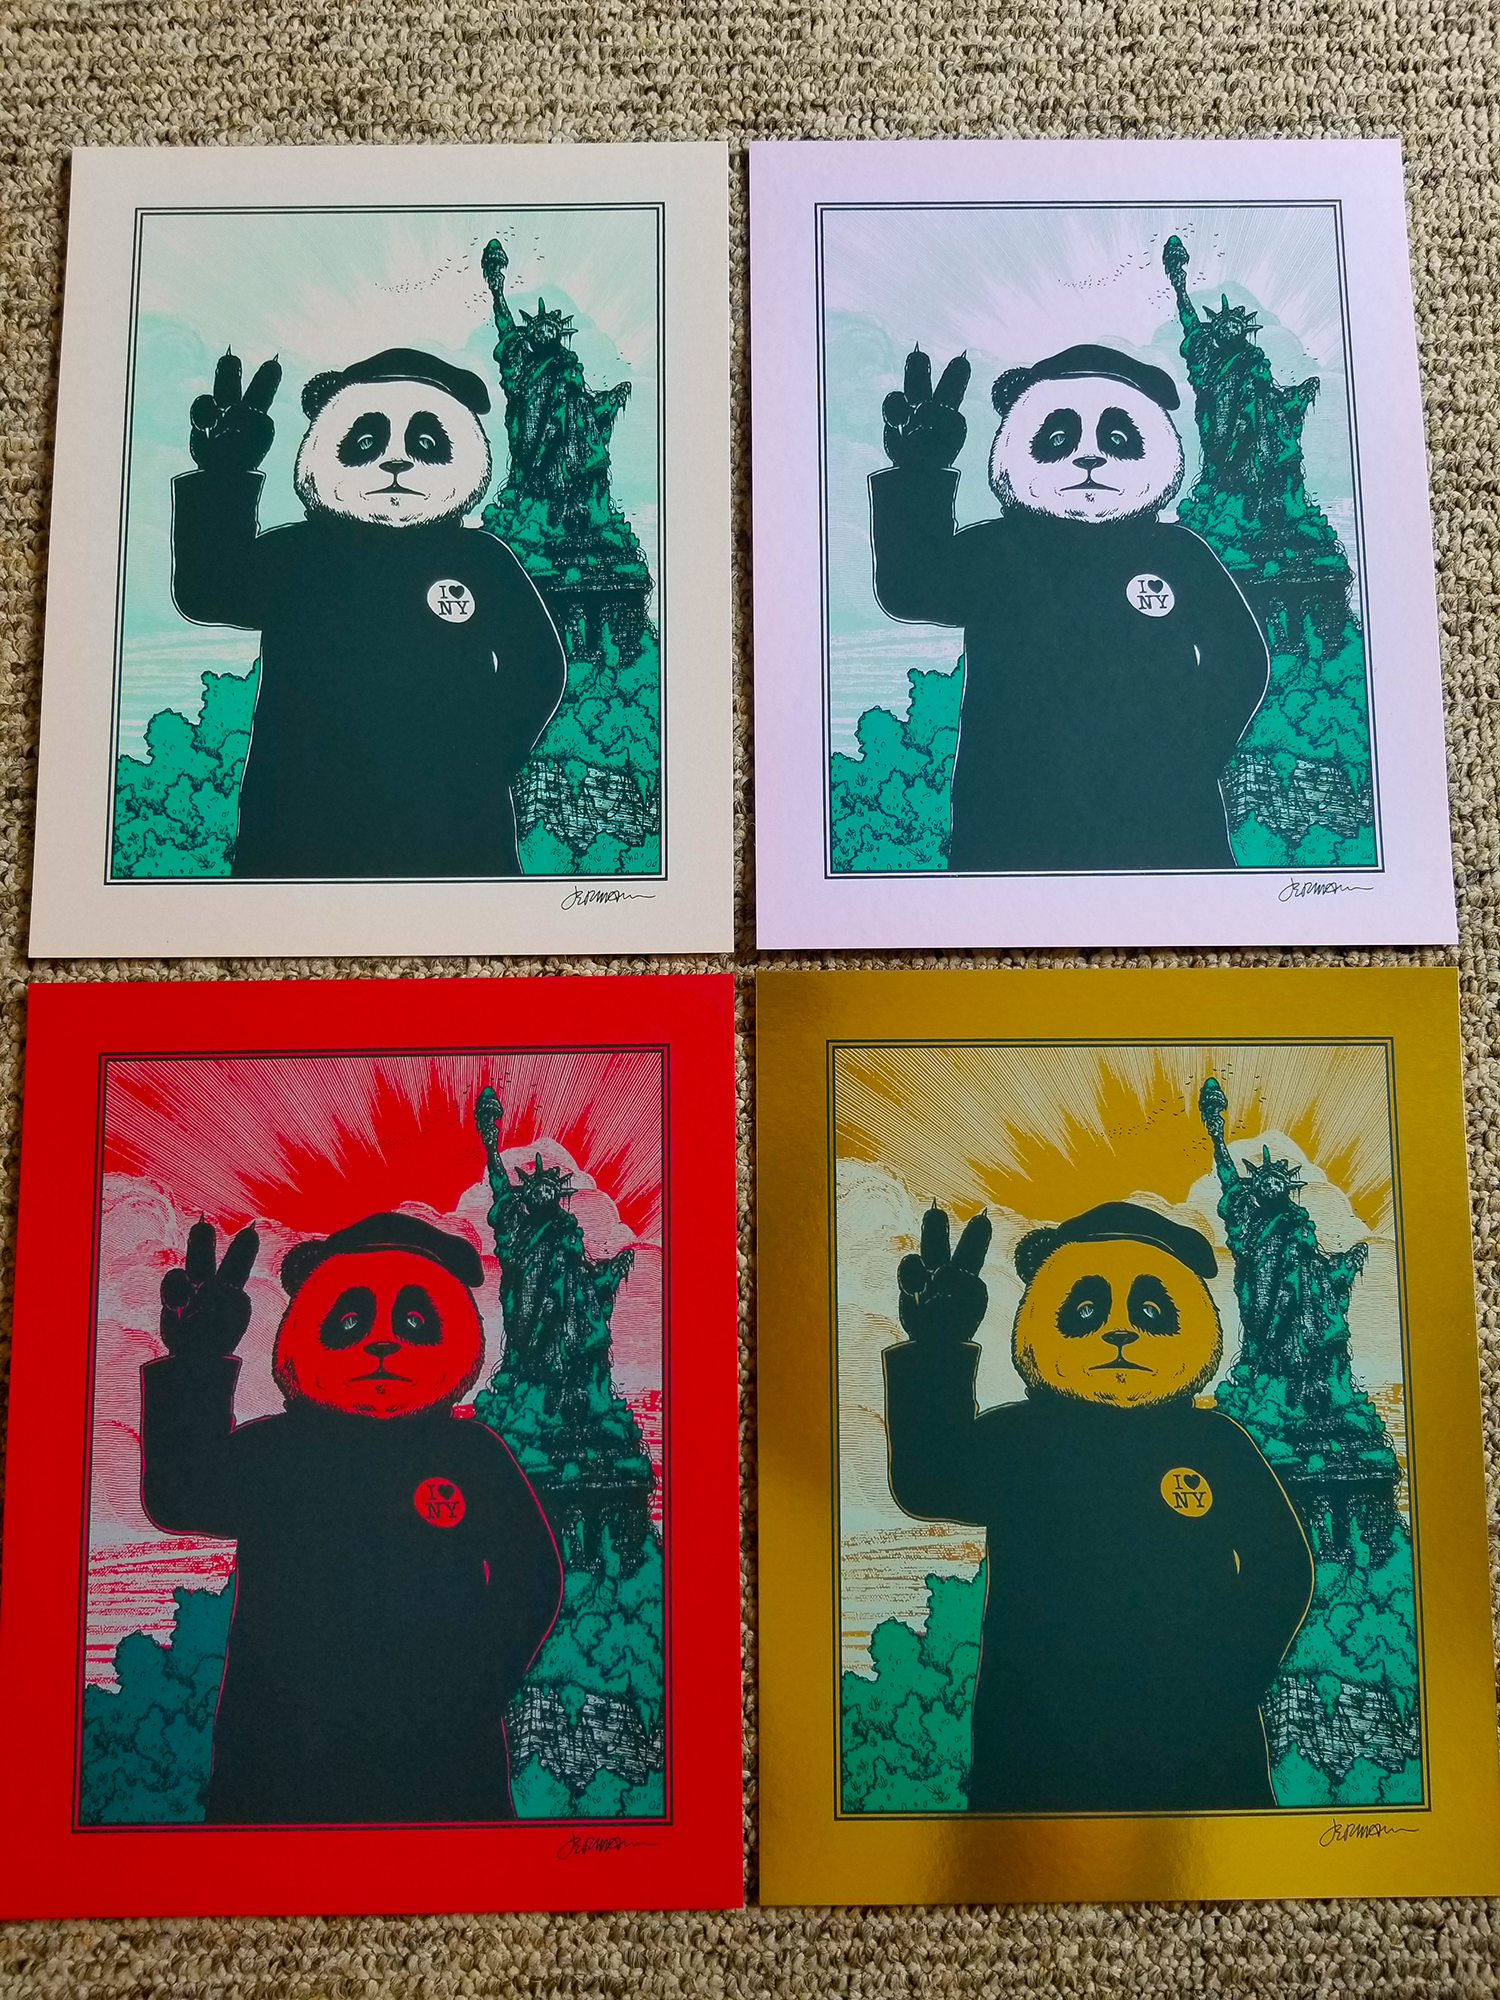 NEW 'Gimme Some Peace' Mini Art Print (VARIANTS) Eddie Vedder/Pearl Jam